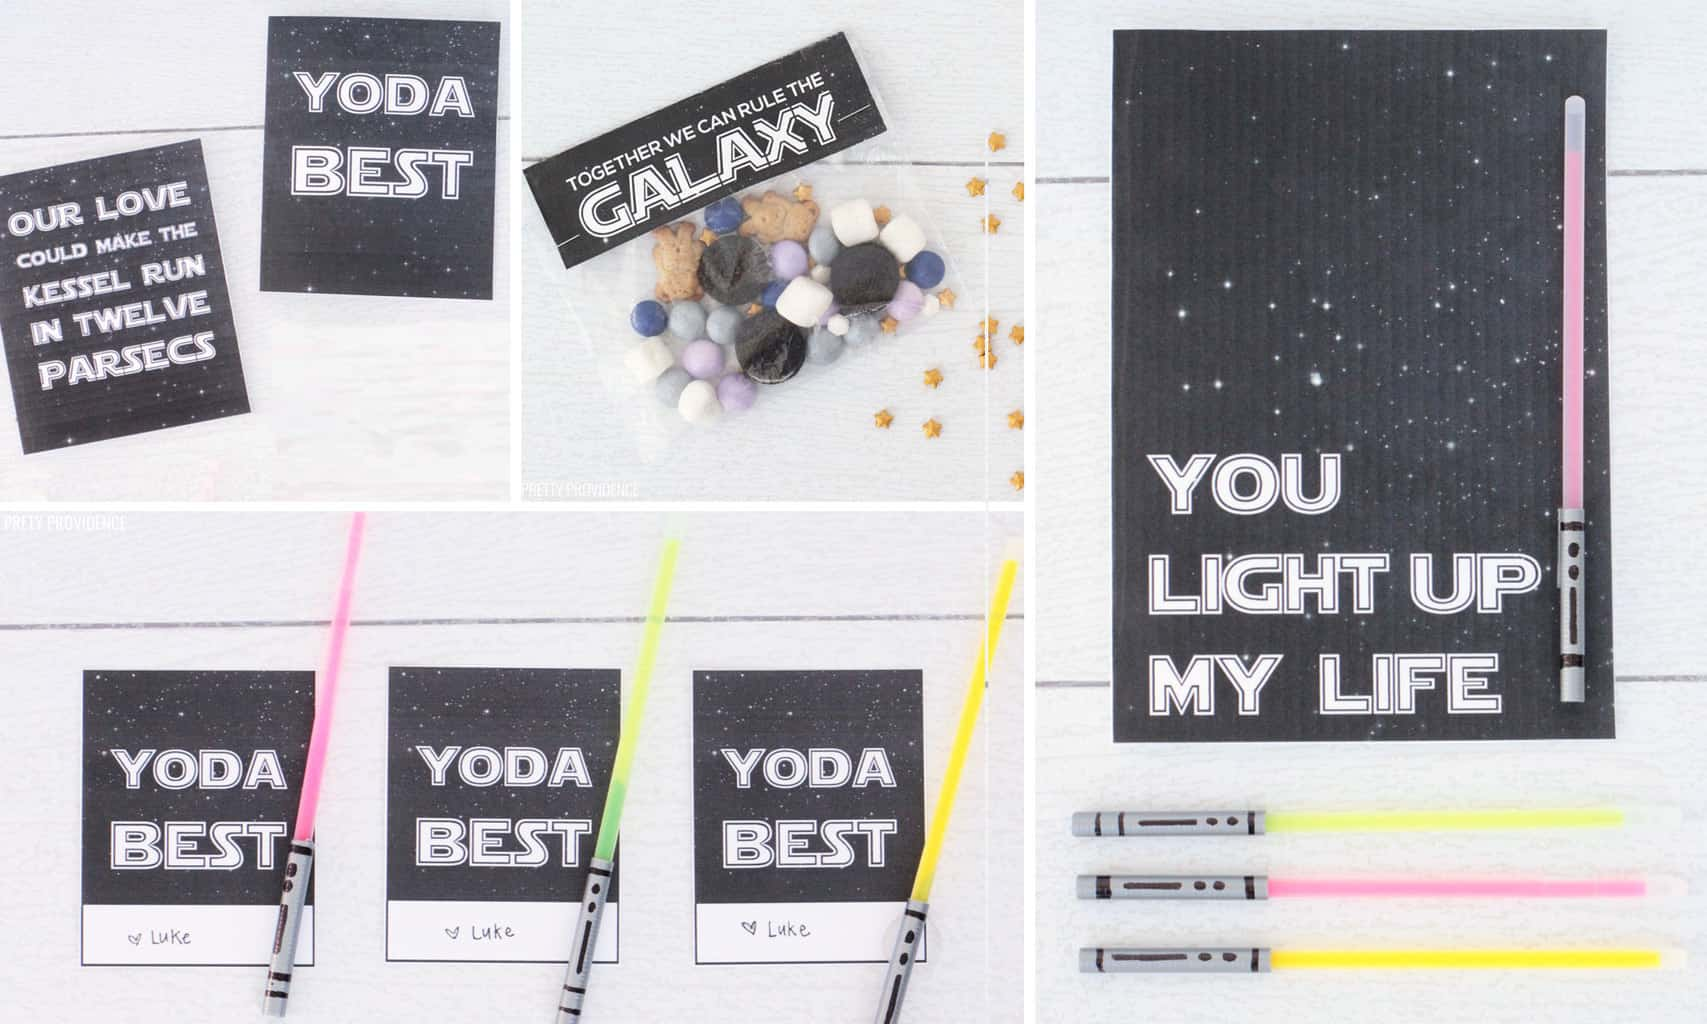 Collection of Star Wars valentines printables - black with white stars and phrases like 'you light up my life' 'yoda best' 'together we can rule the galaxy' and 'our love could make the kessel run in twelve parsecs'